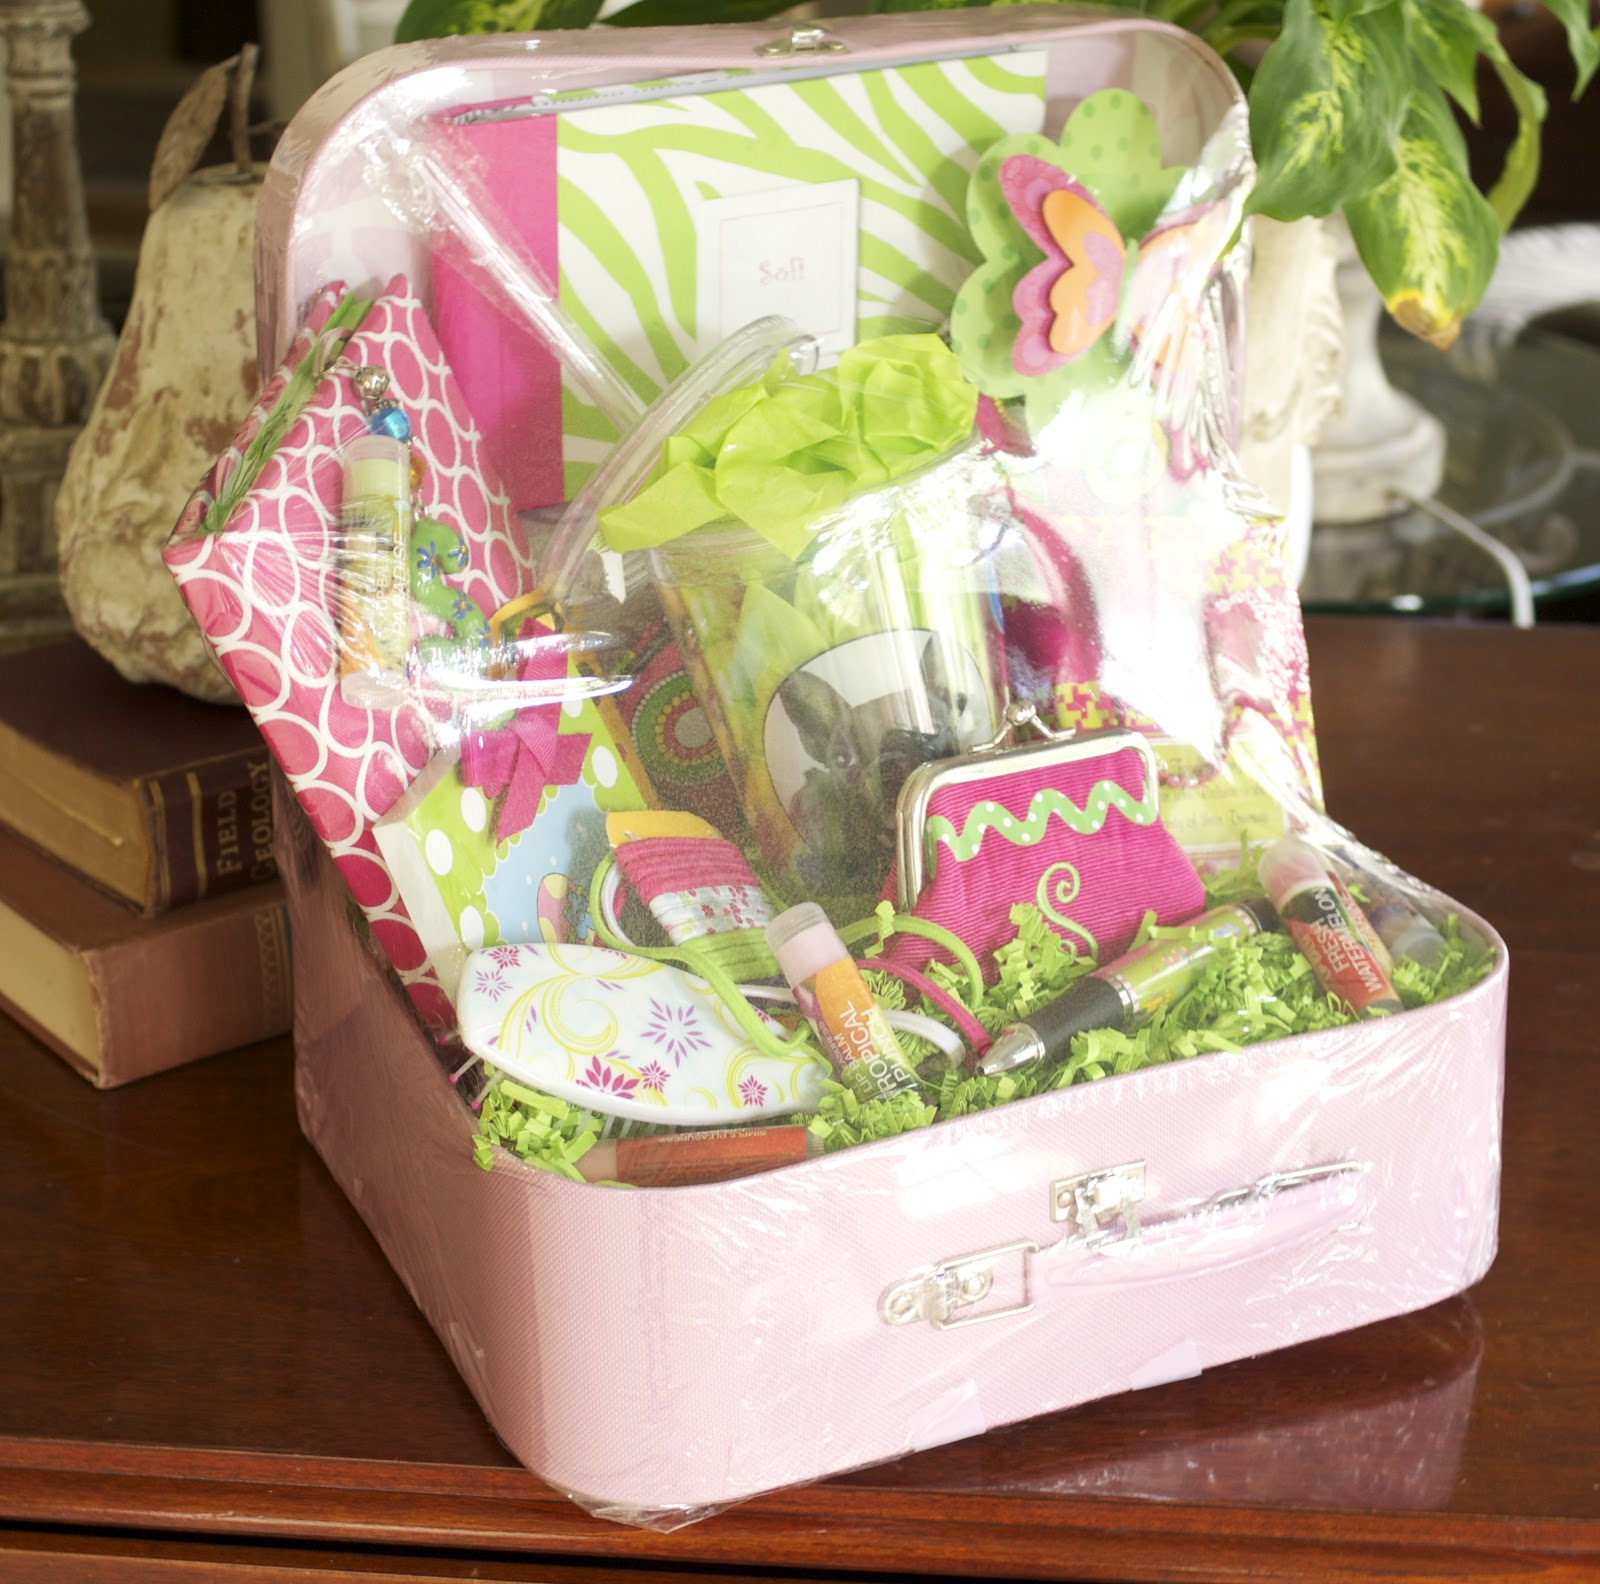 ideas and inspiration for creative living making gift baskets, Birthday card